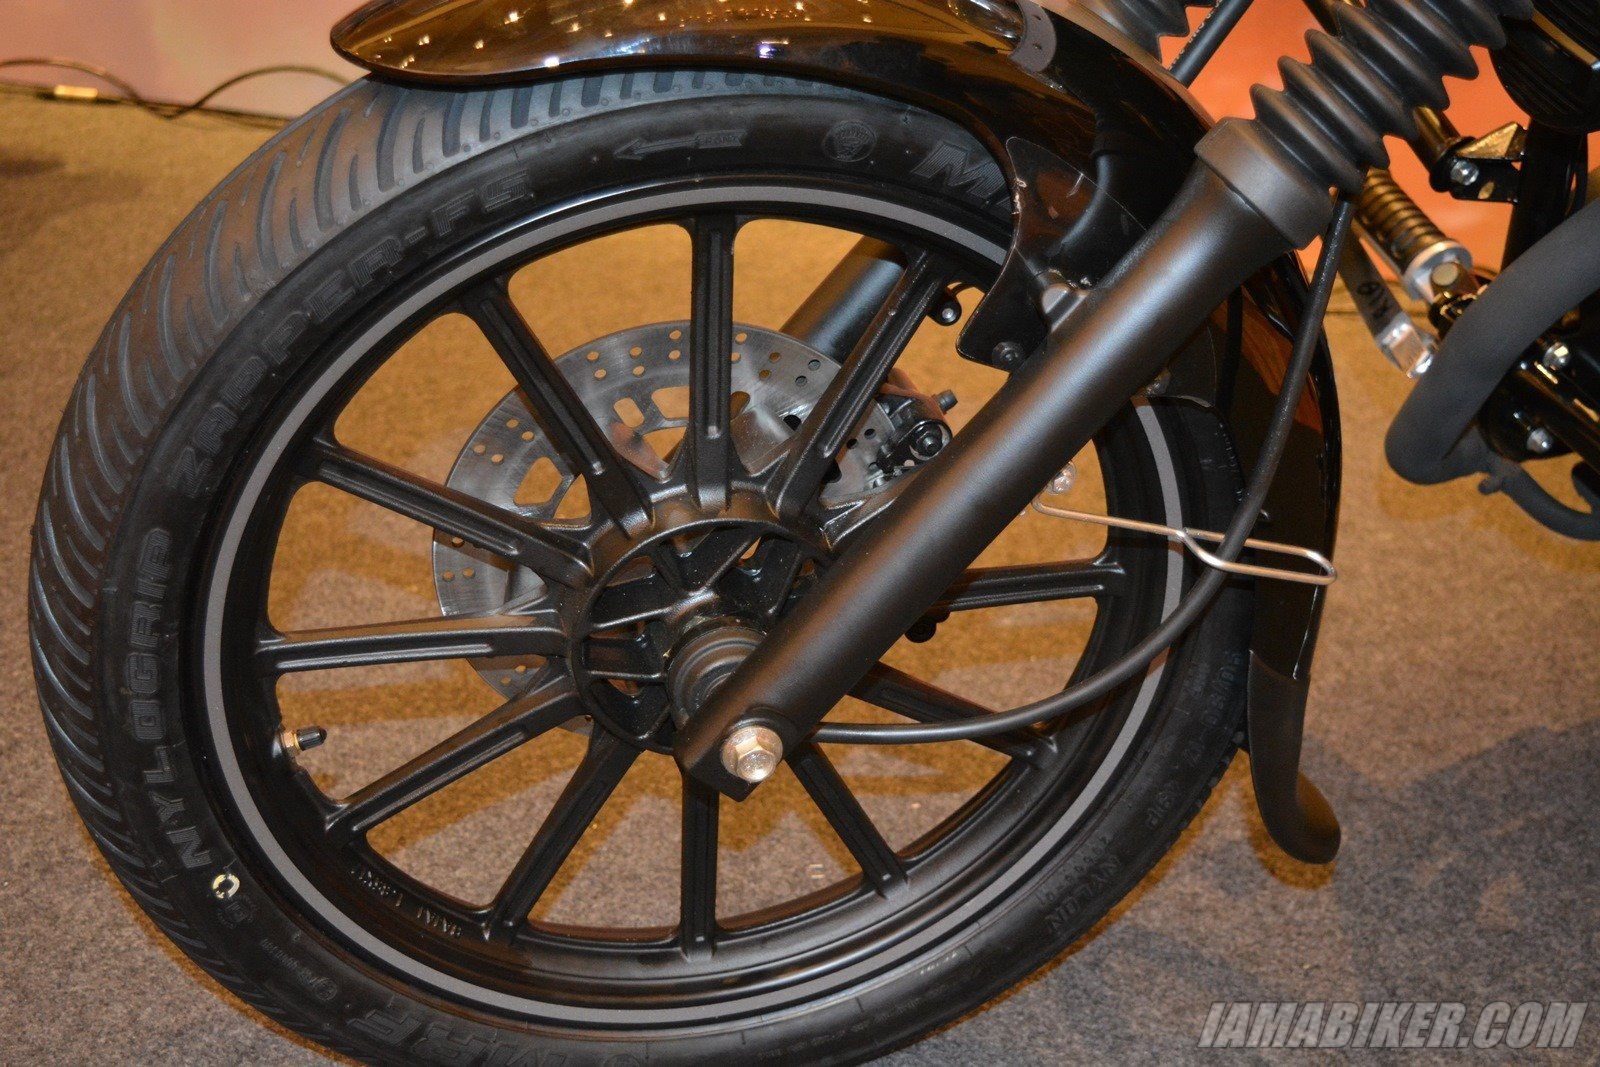 New Bajaj Avenger alloy wheels